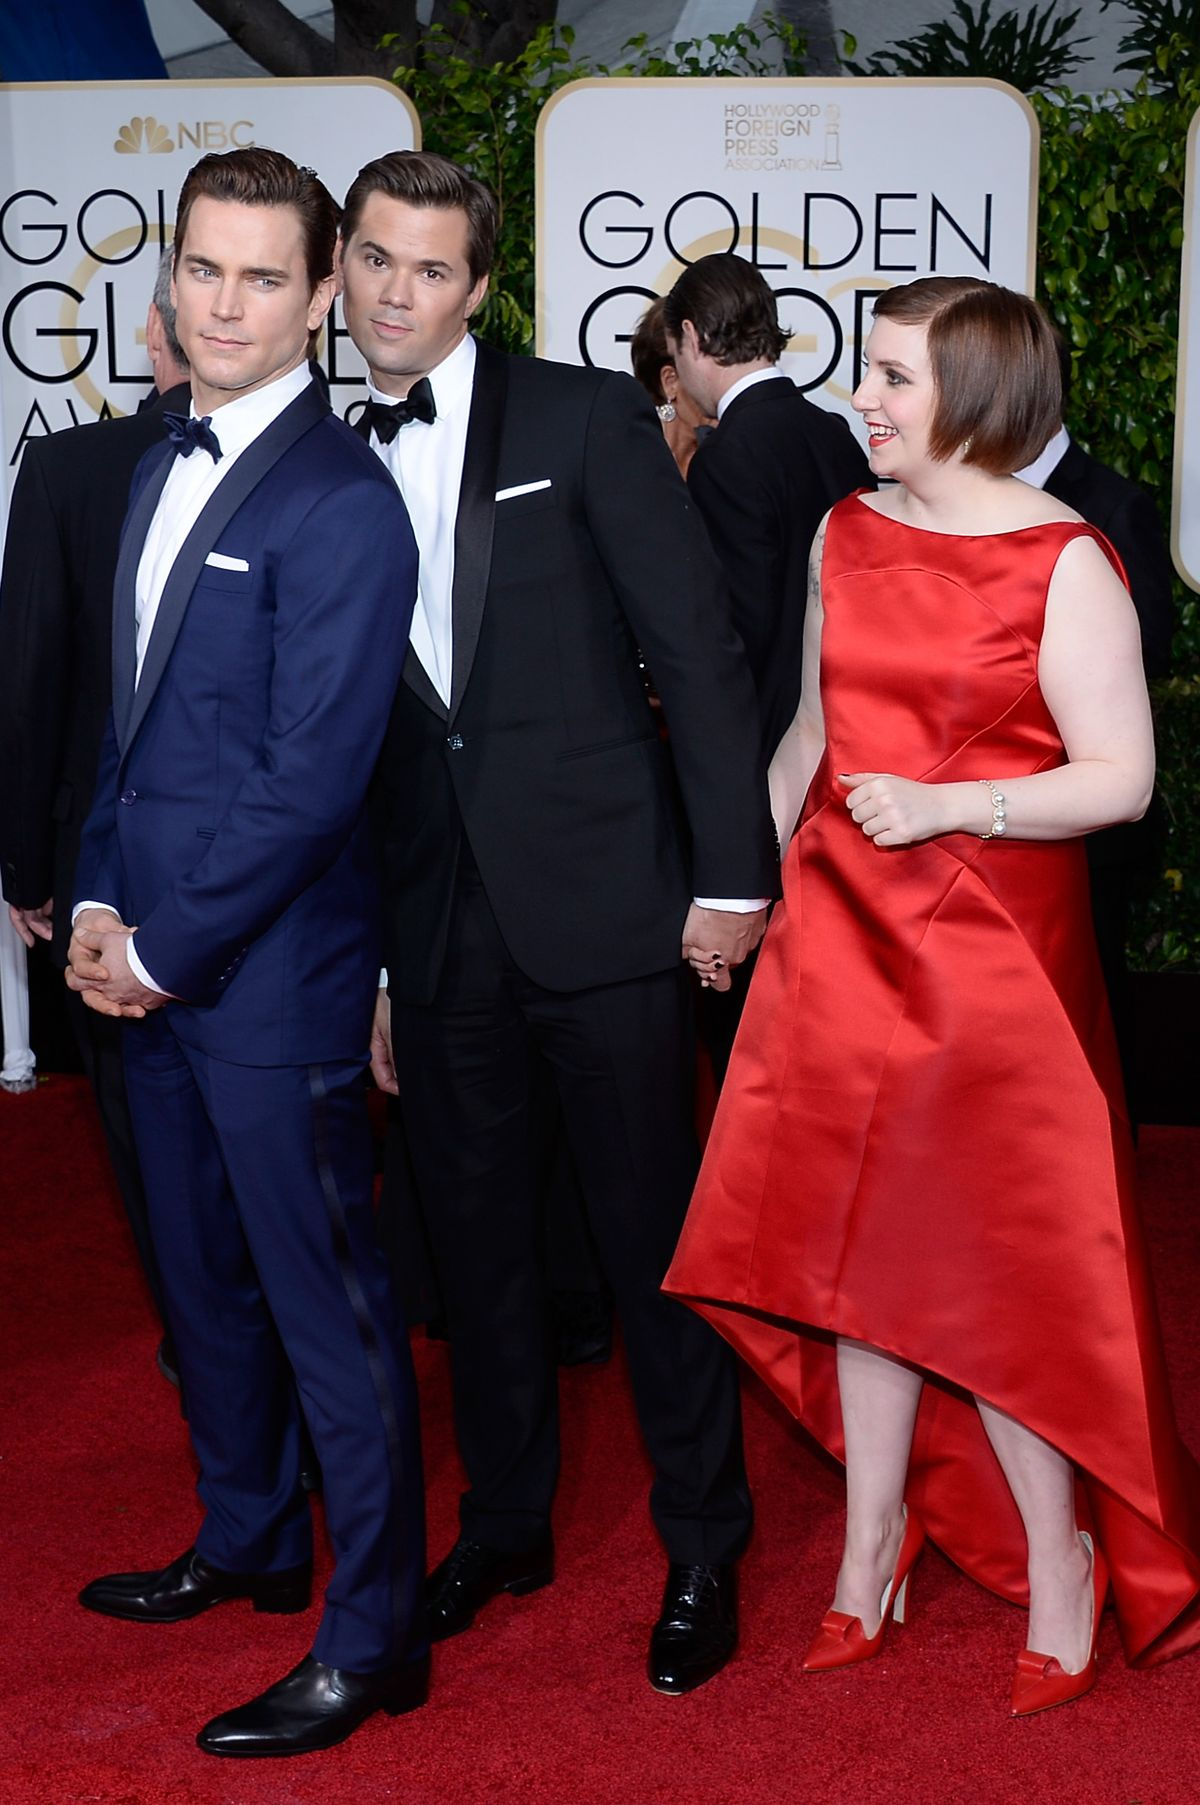 Lena Dunham and Andrew Rennells at 2015 Golden Globes